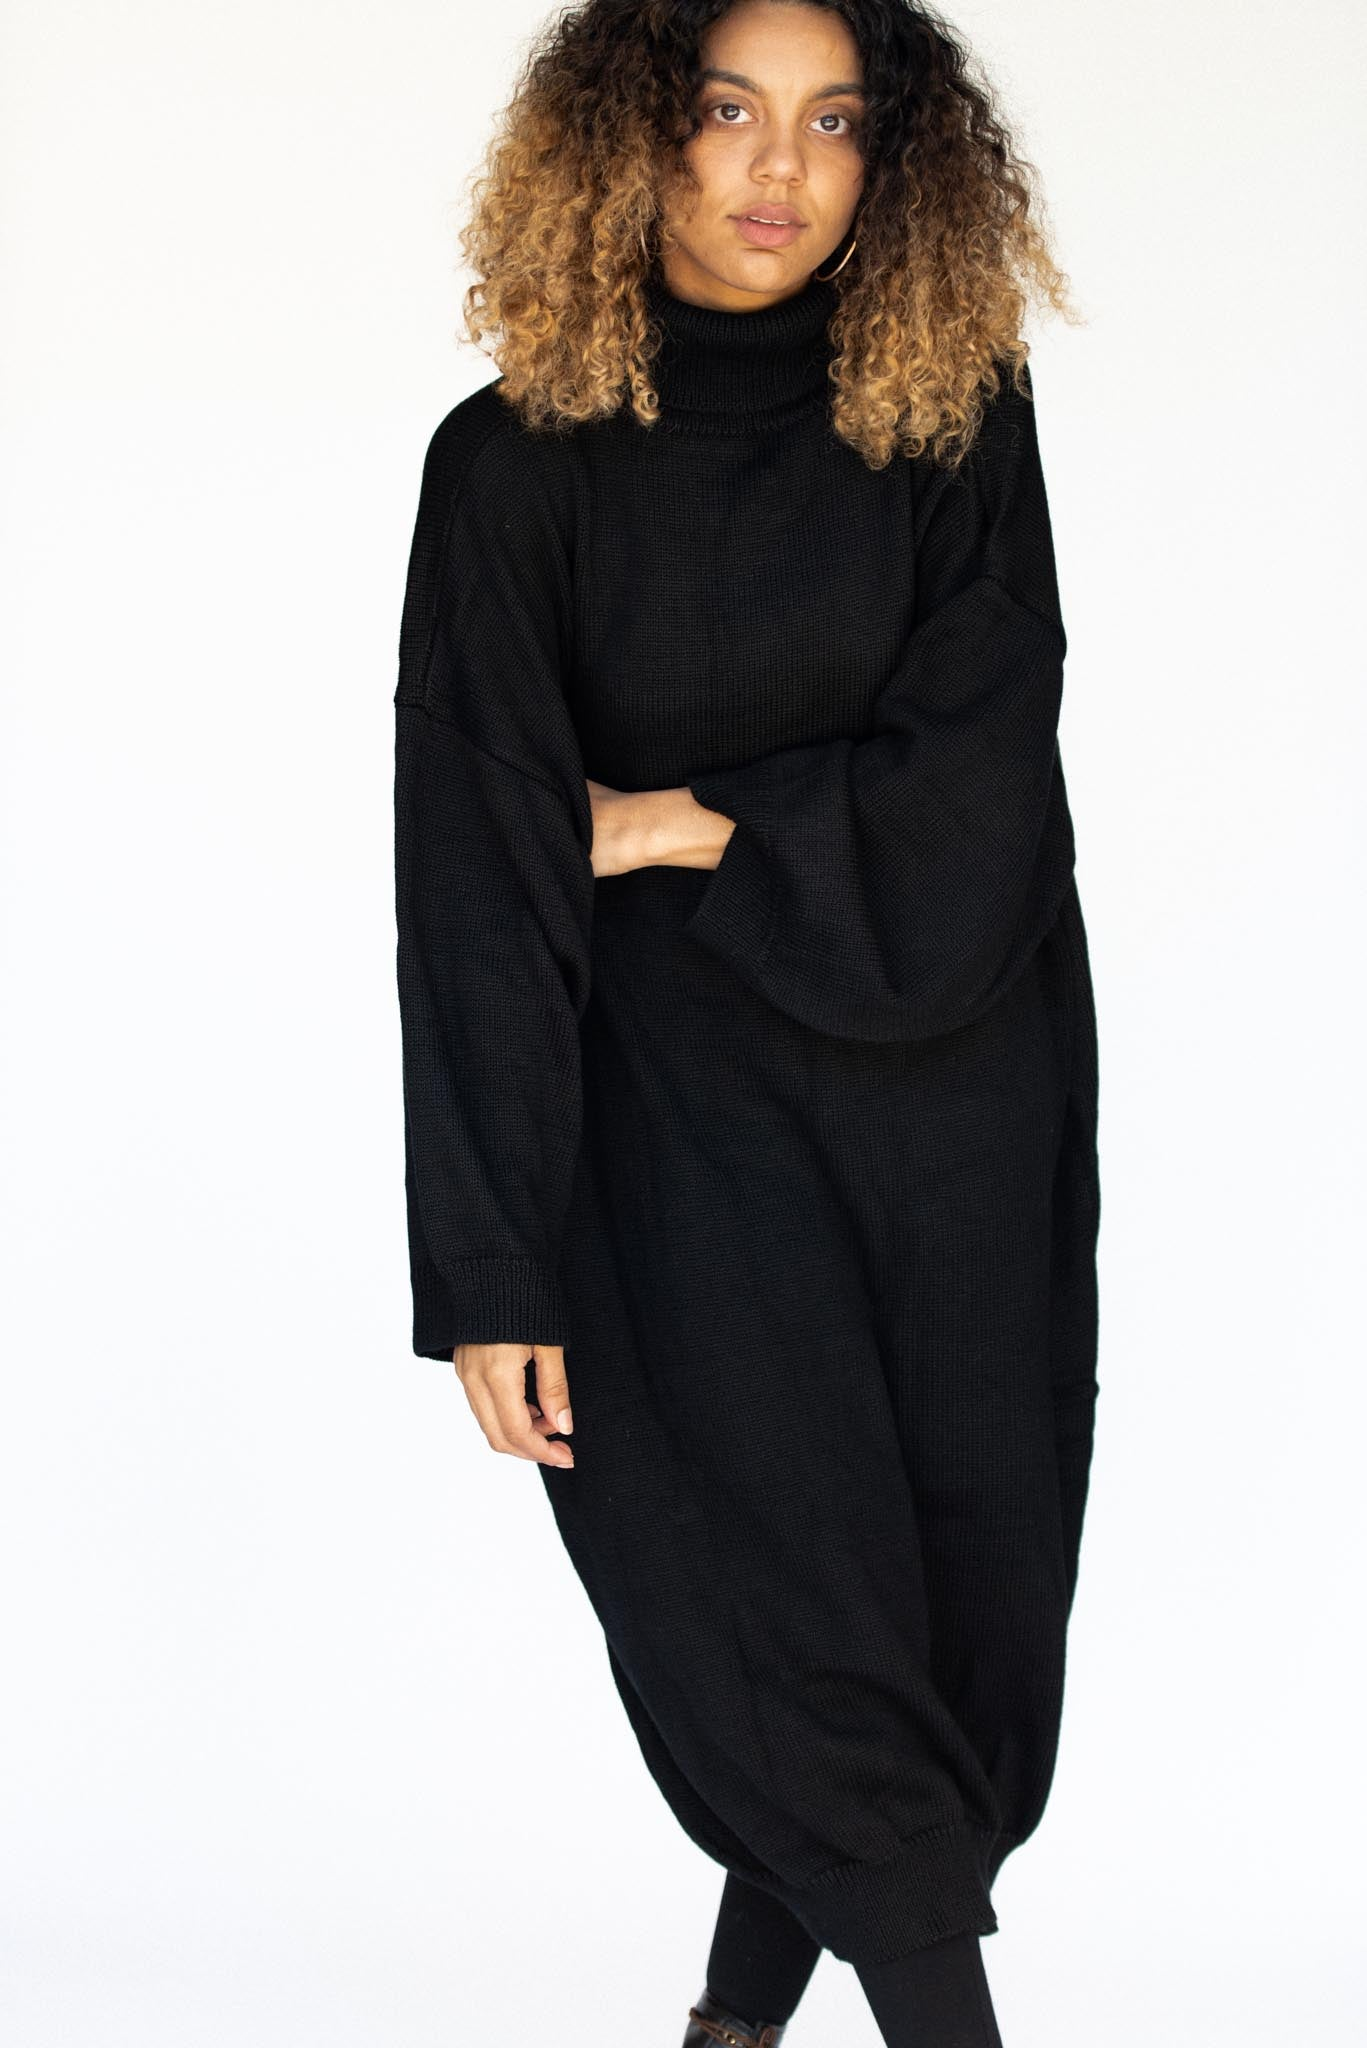 TURTLE NECK OVERSIZE SWEATER/DRESS